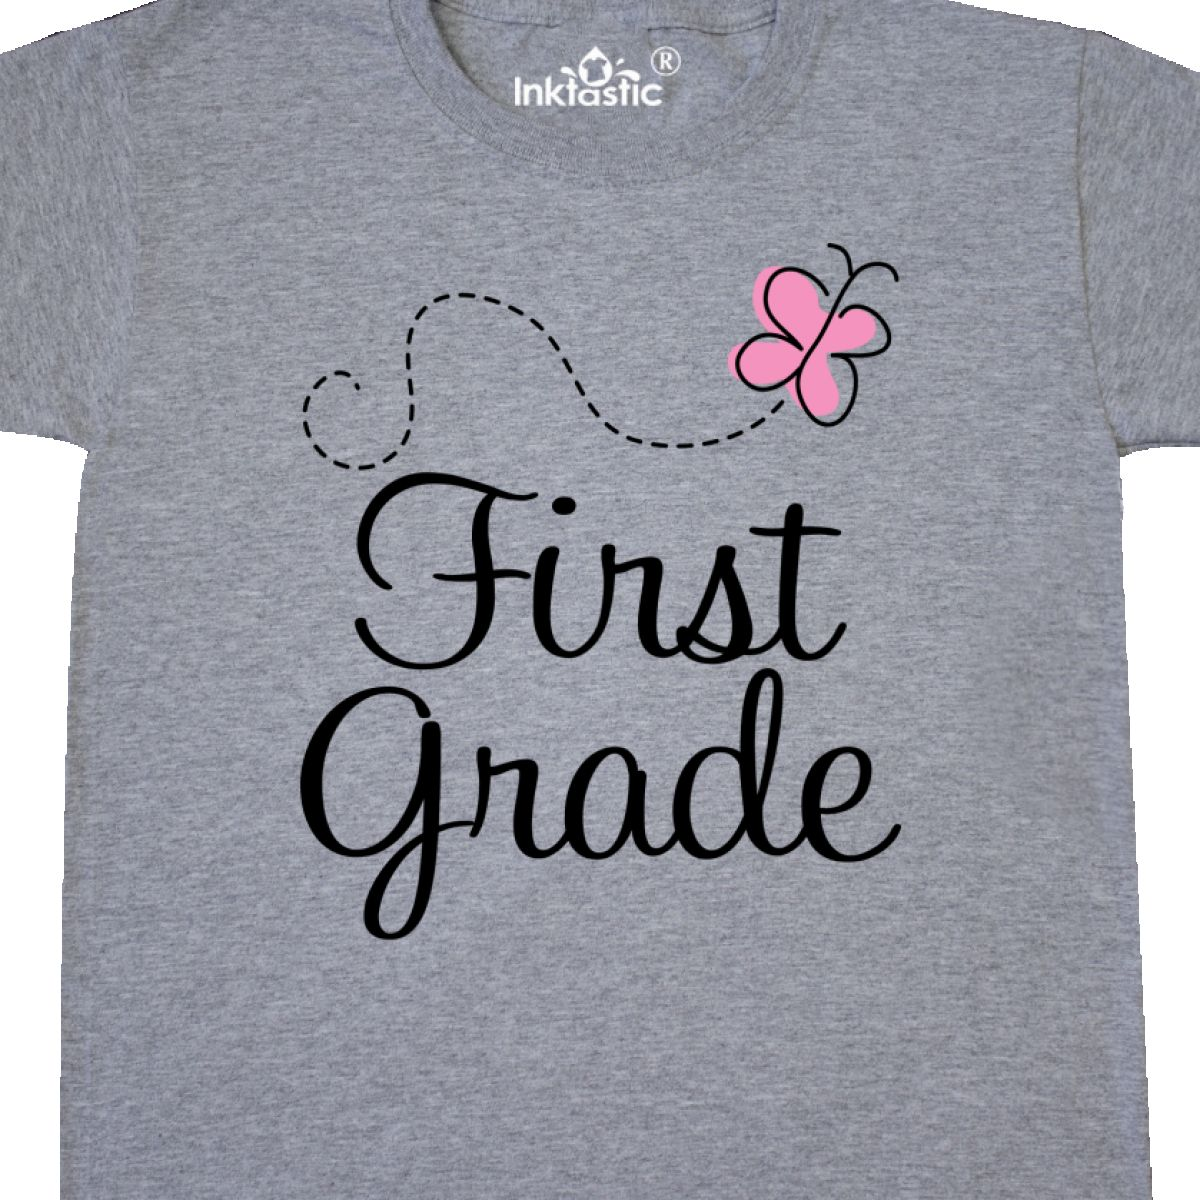 Inktastic 1st Grade School Butterfly Youth T-Shirt First Elementary Student Kids